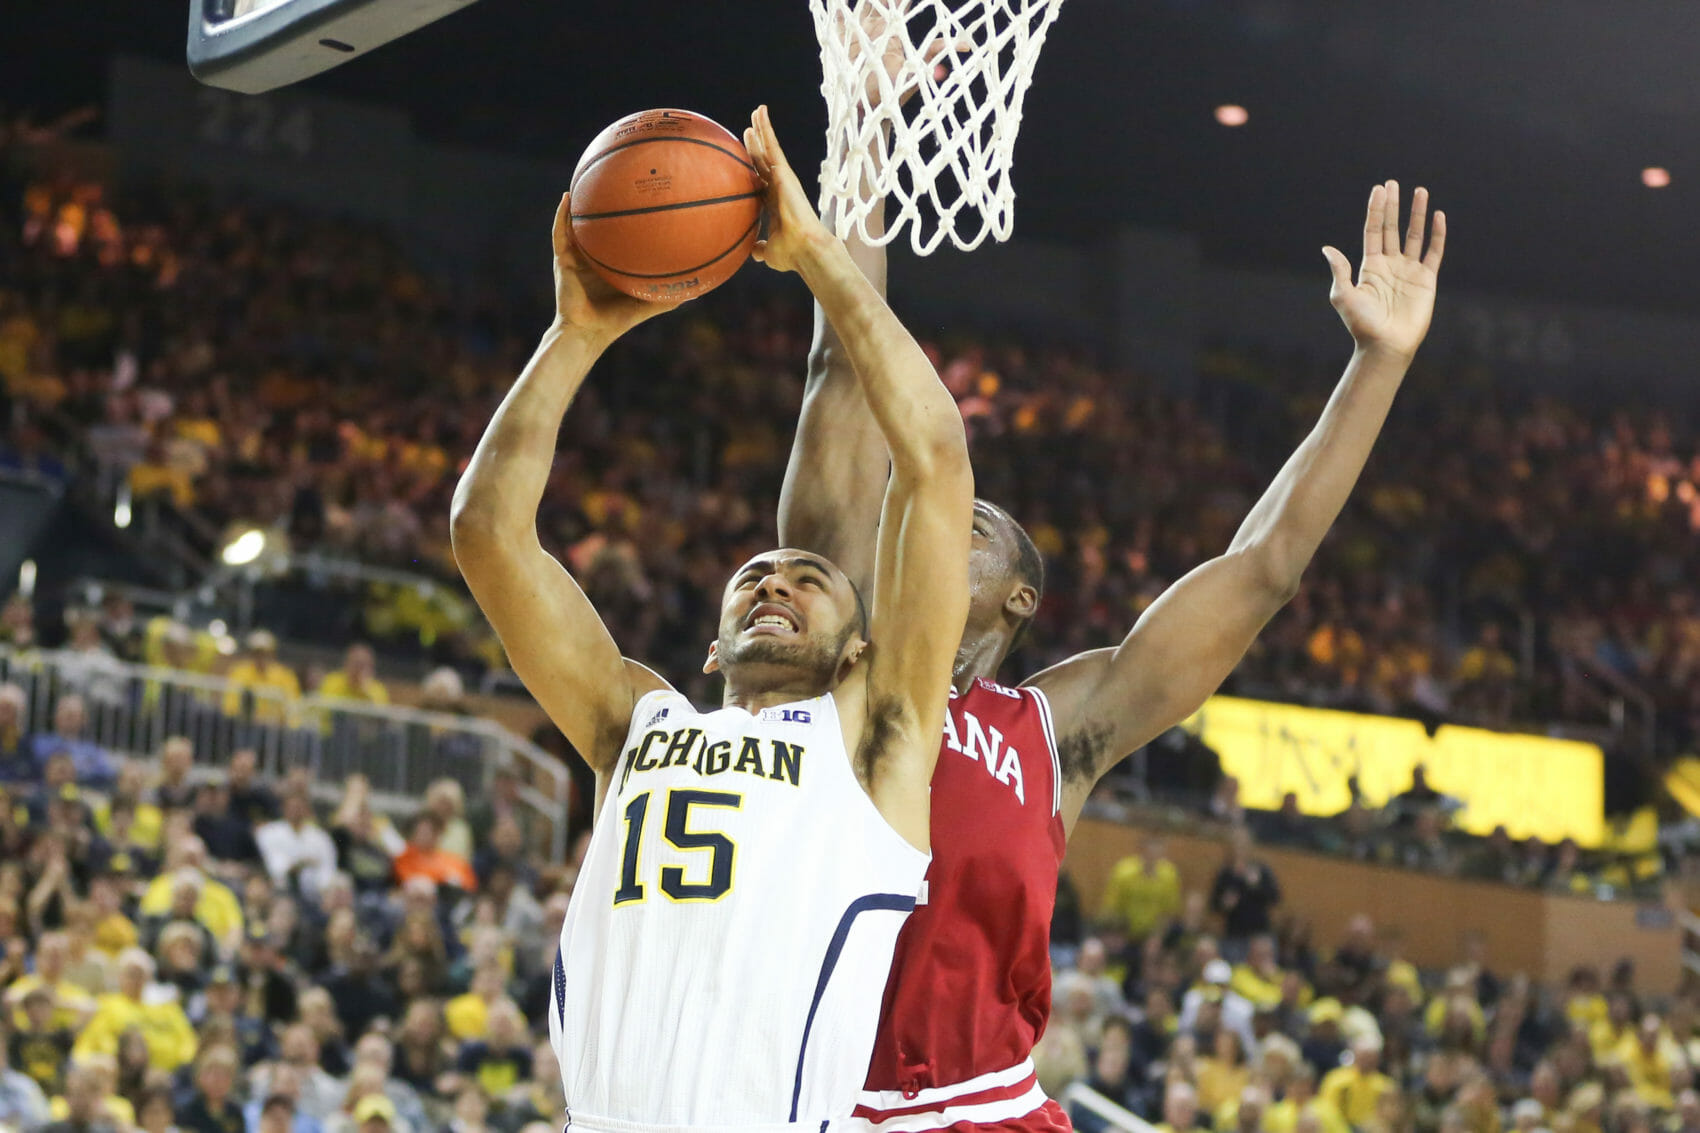 Michigan 84, Indiana 80-22